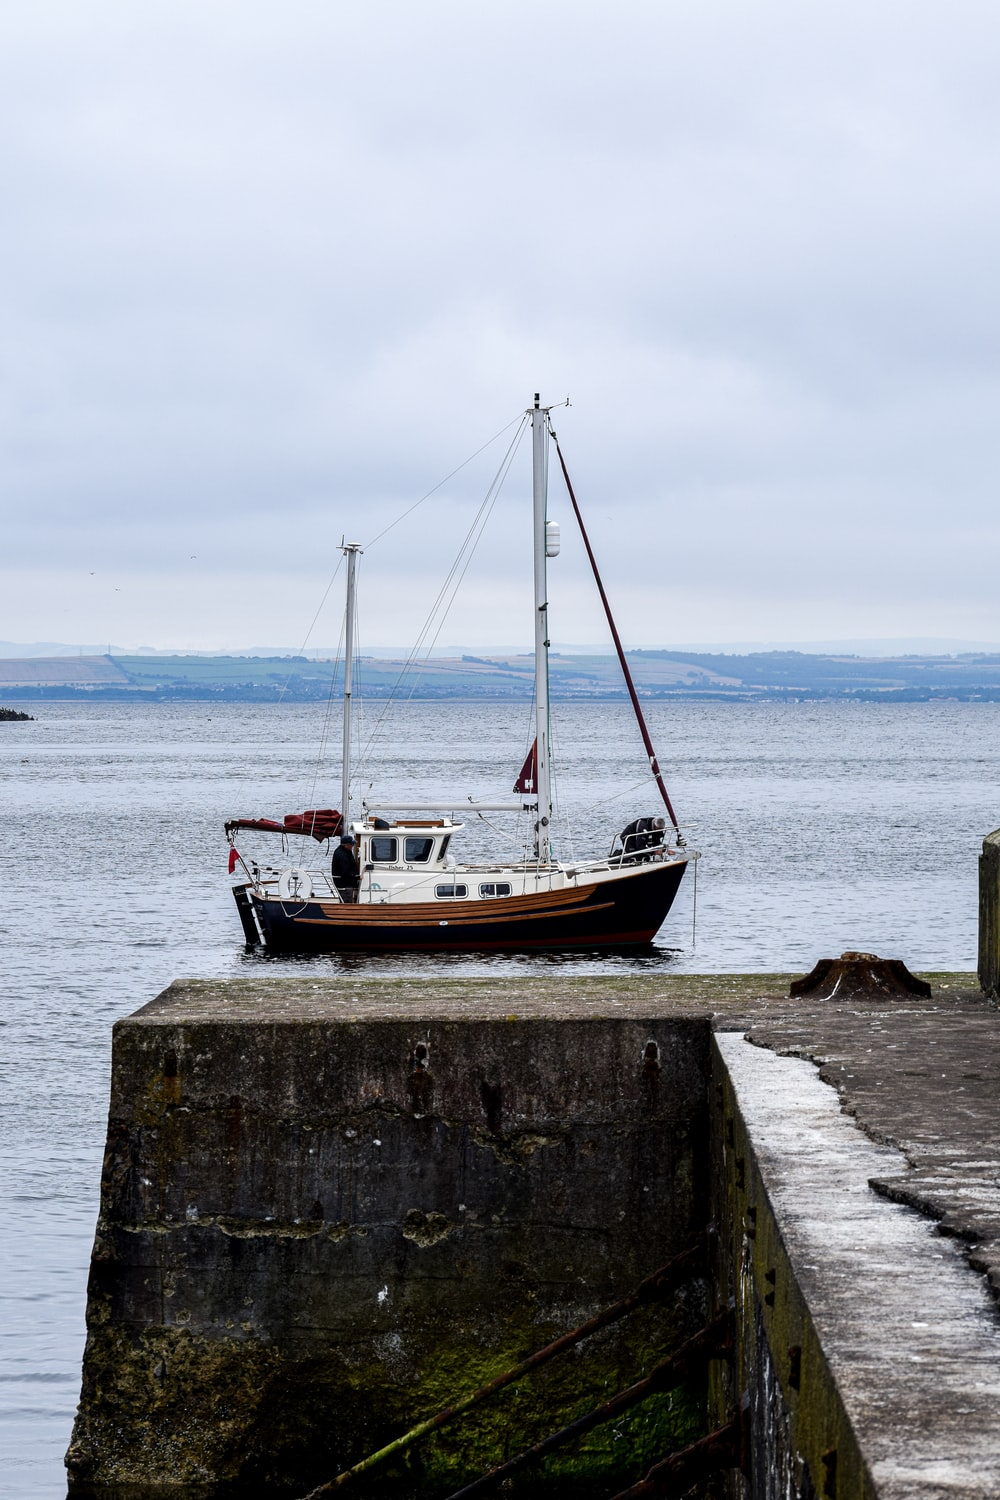 brown and white boat on sea dock during daytime